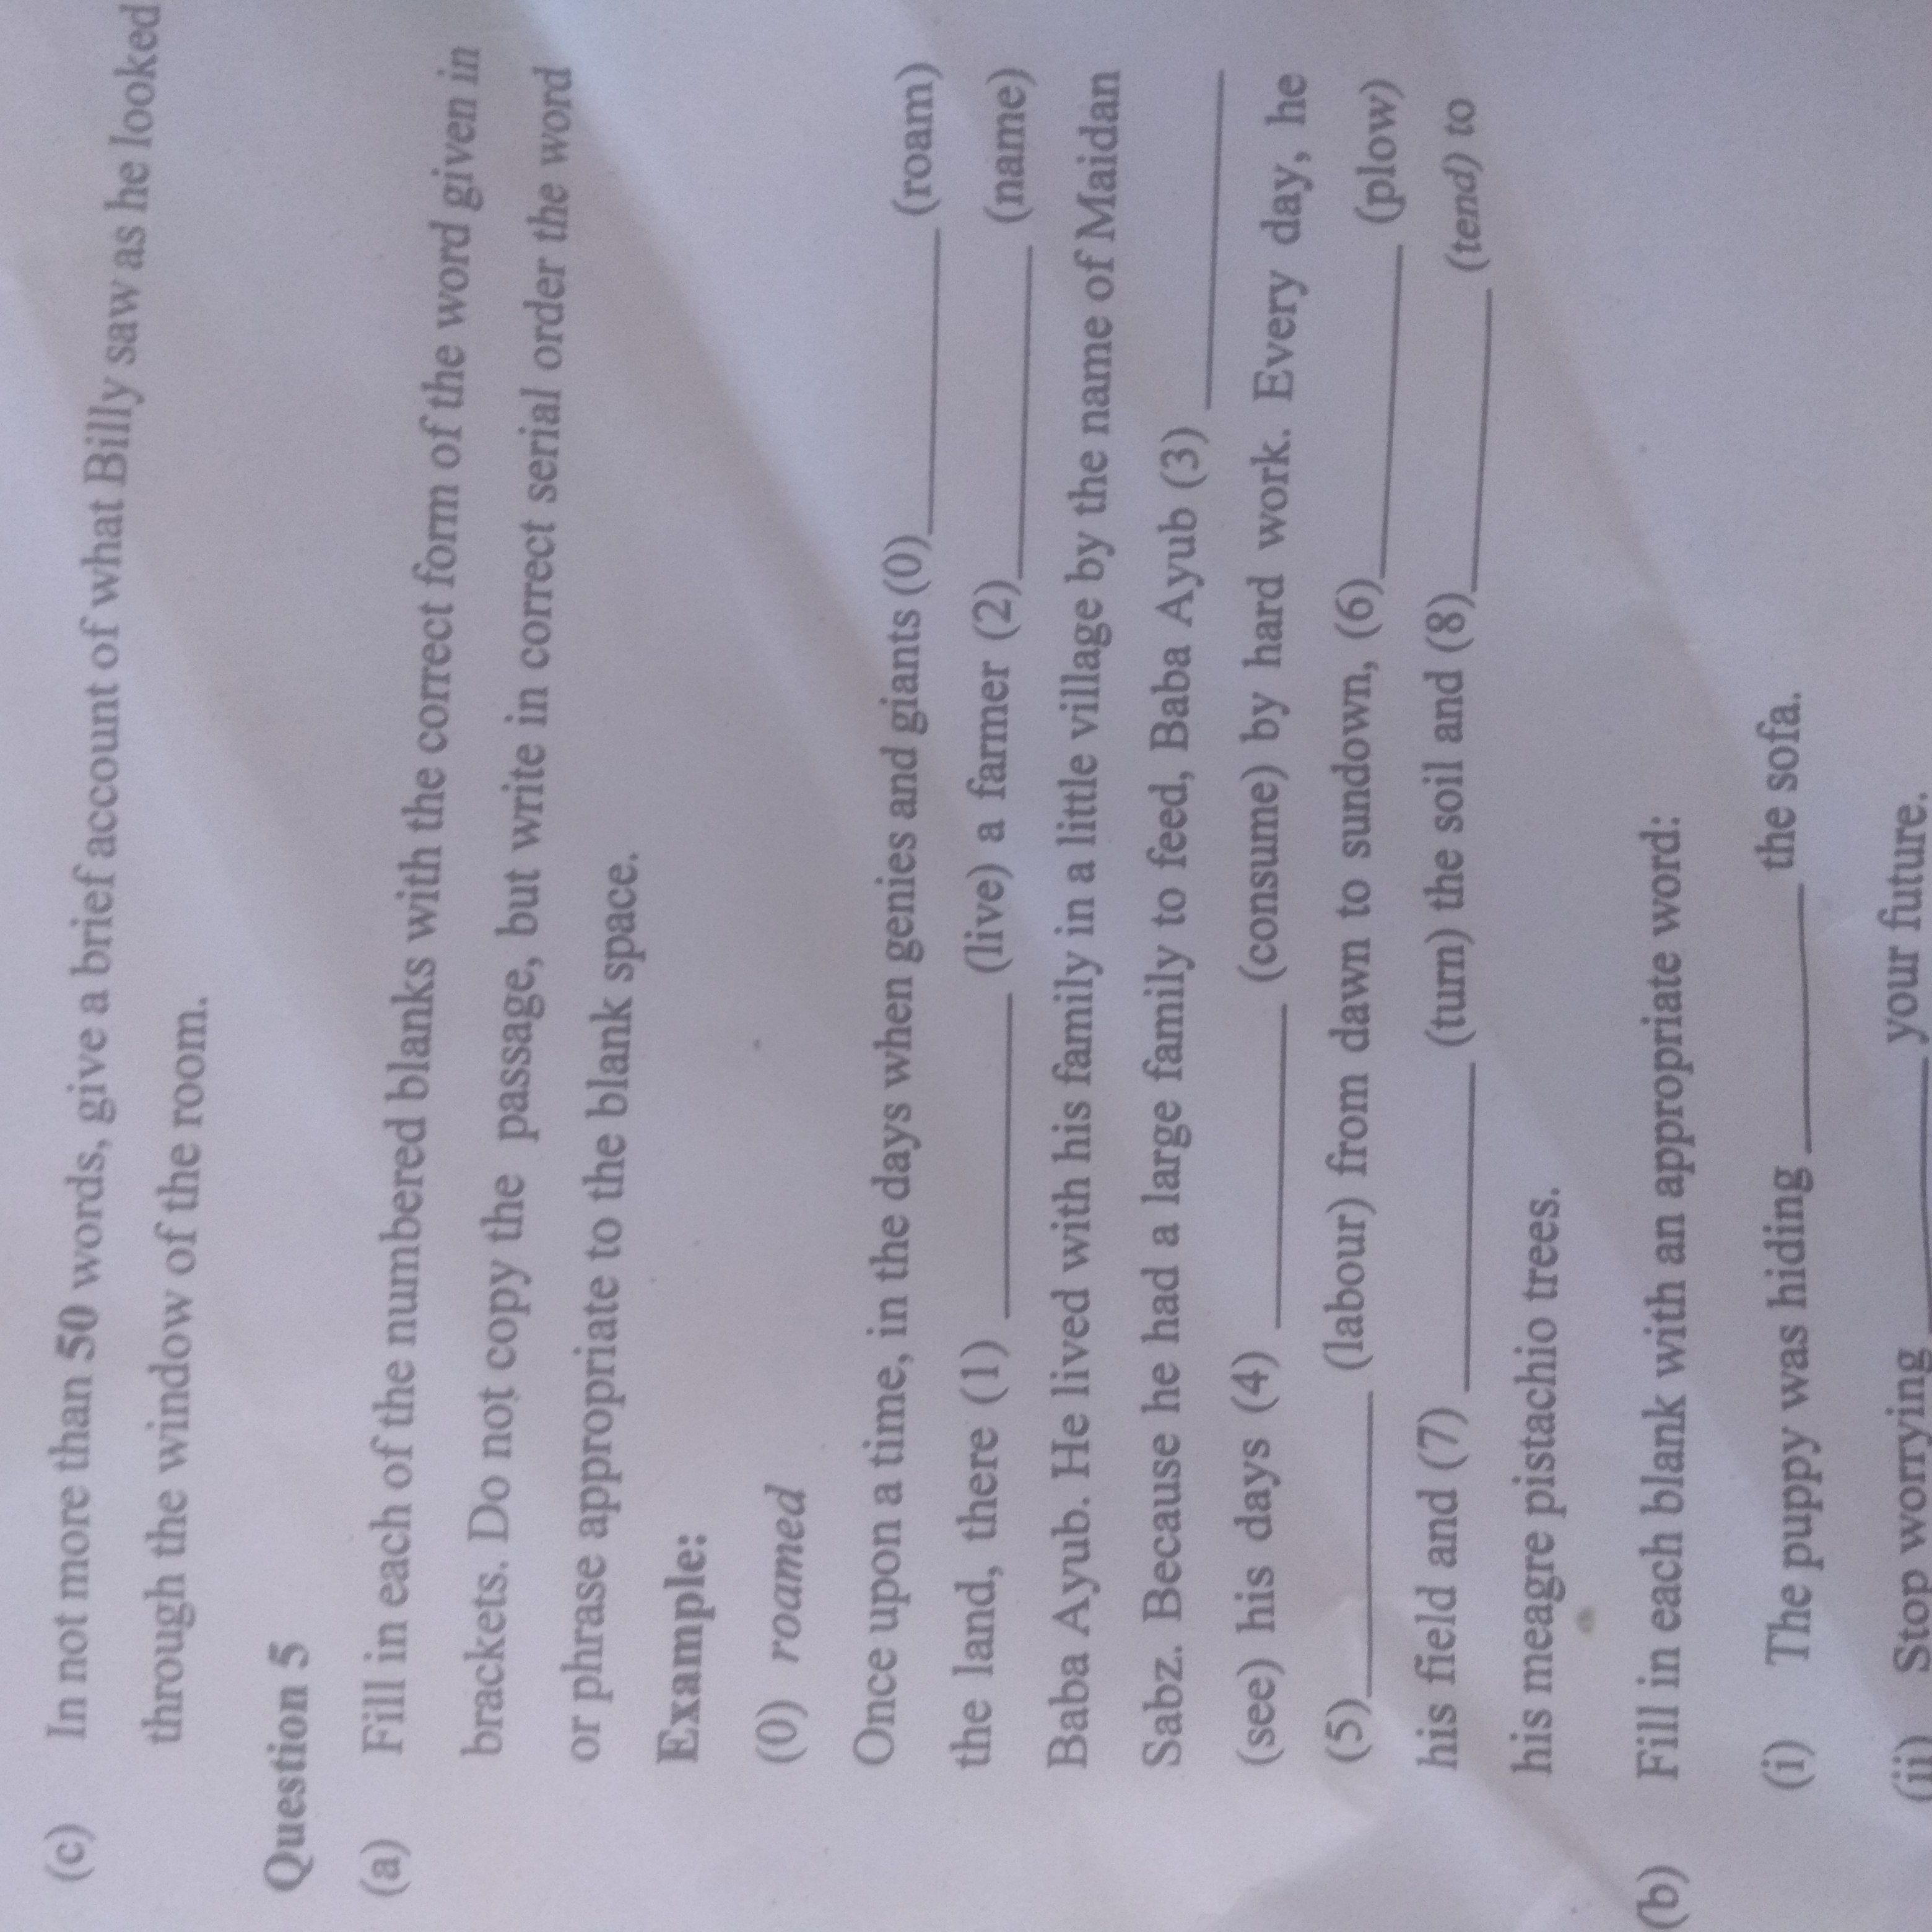 could someone solve the question5 of icse question paper